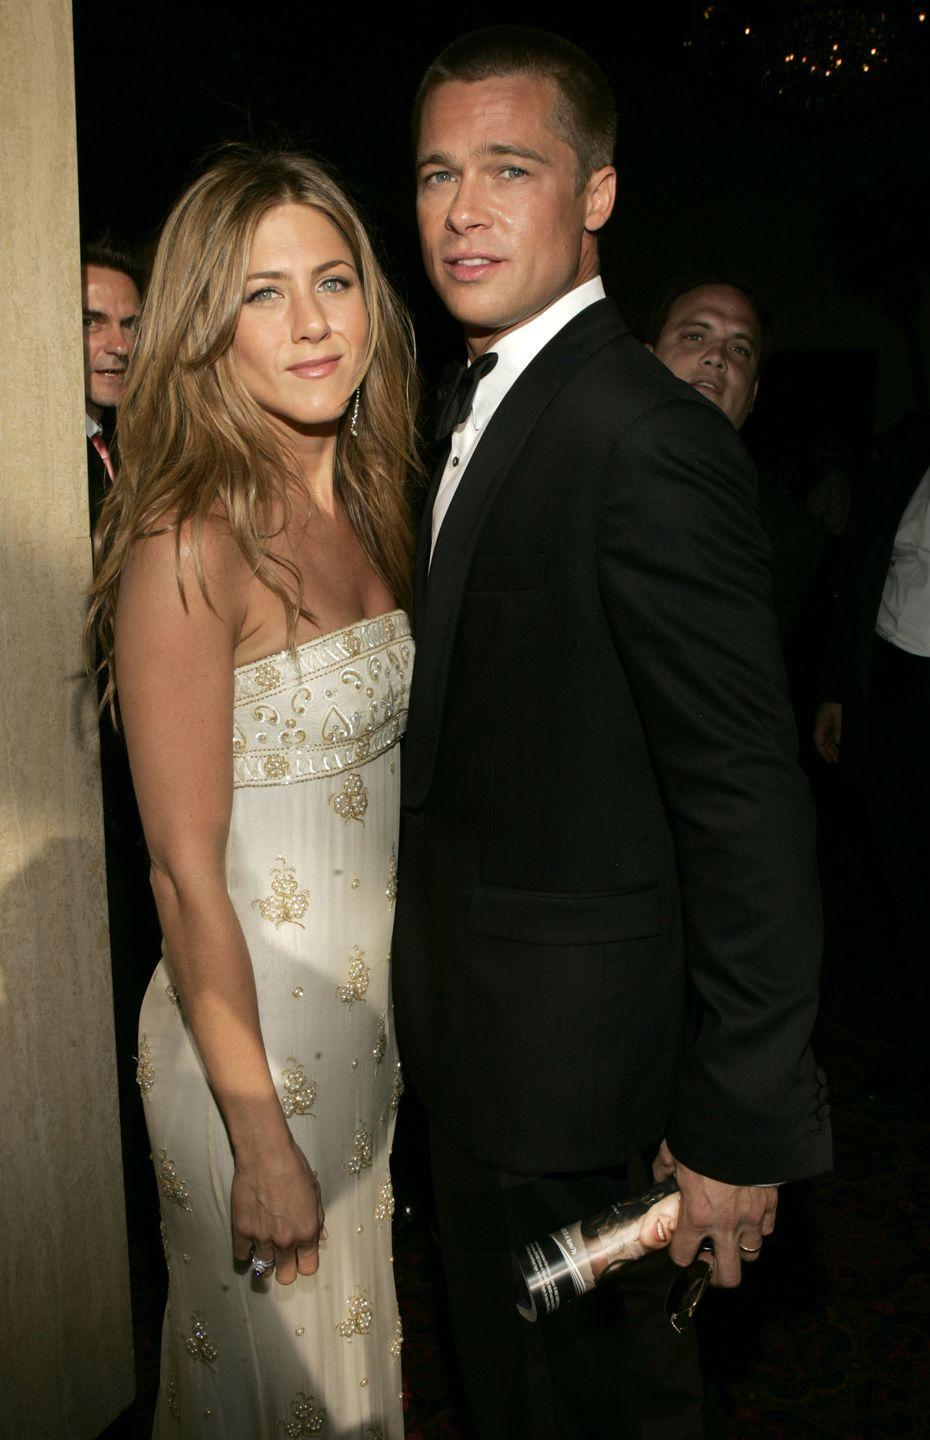 "<p>If there's any celebrity wedding we wish we were at, it's this one! Brad Pitt and Jennifer Aniston's 2000 nuptials were the hottest ticket in Hollywood at the time, leading them to spend <a href=""https://www.popsugar.com/celebrity/Jennifer-Aniston-Brad-Pitt-Wedding-Facts-43462106"" rel=""nofollow noopener"" target=""_blank"" data-ylk=""slk:$100,000 alone on security"" class=""link rapid-noclick-resp"">$100,000 alone on security</a> for the event. At the end of the day, the wedding cost $1 million. They divorced in 2005. </p>"